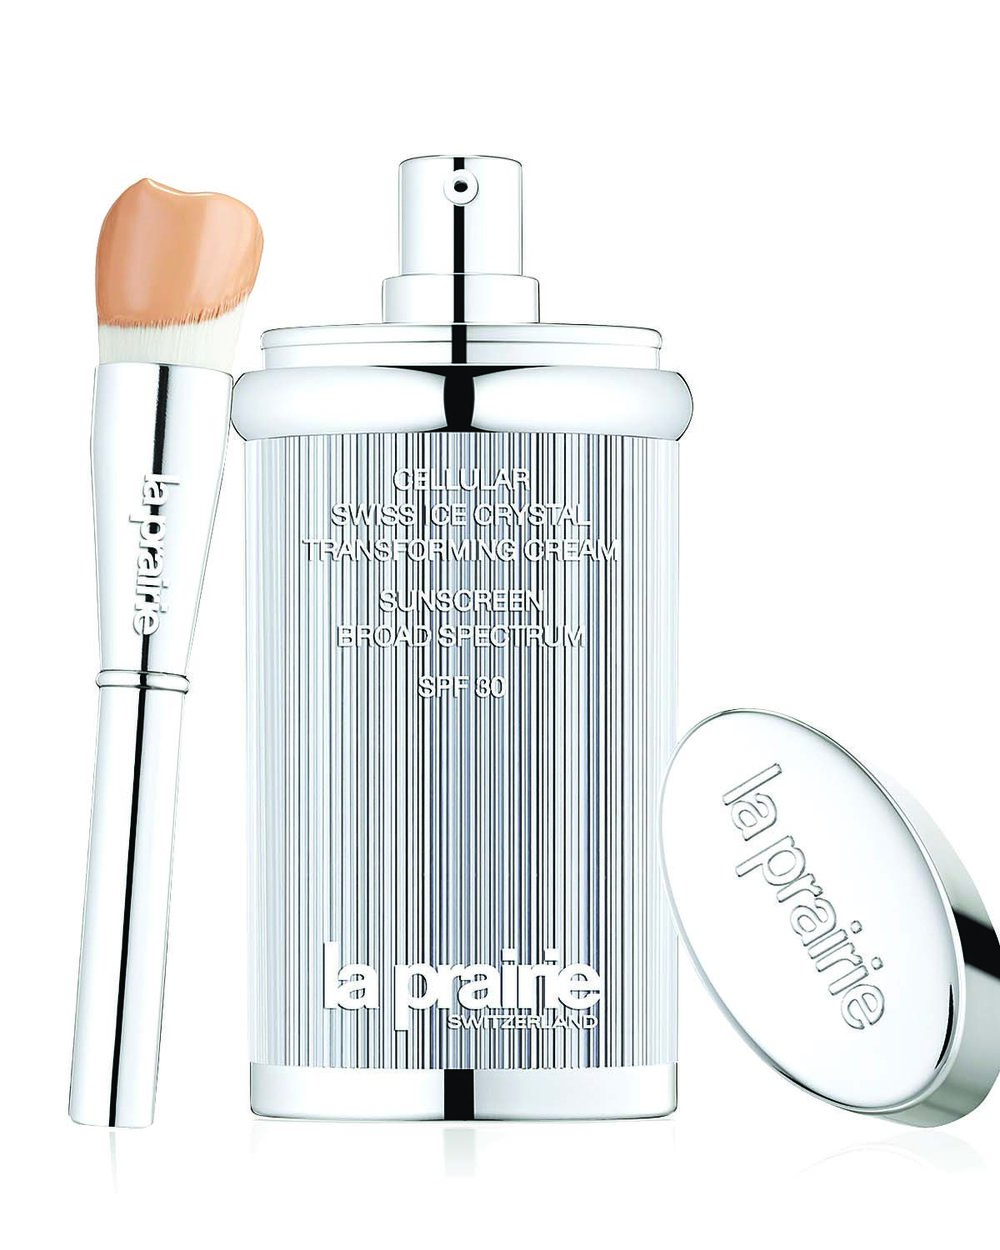 La Prairie Cellular Swiss Ice Crystal Transforming Cream 40ml $250